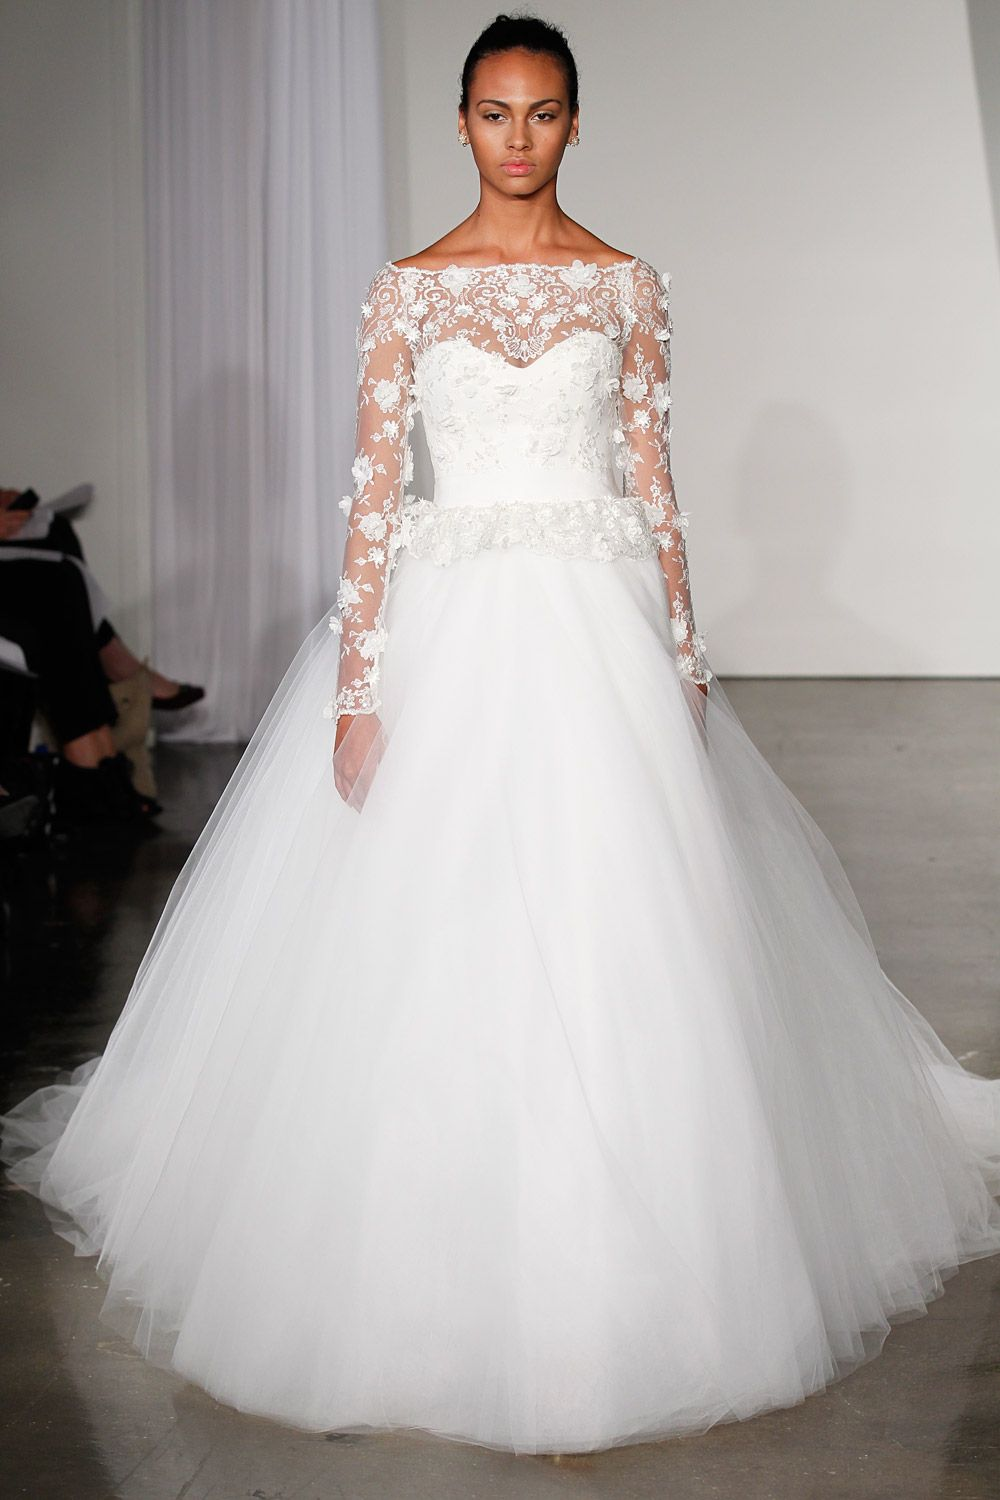 Enchanting Marchesa Wedding Dresses | Marchesa, Marchesa wedding ...